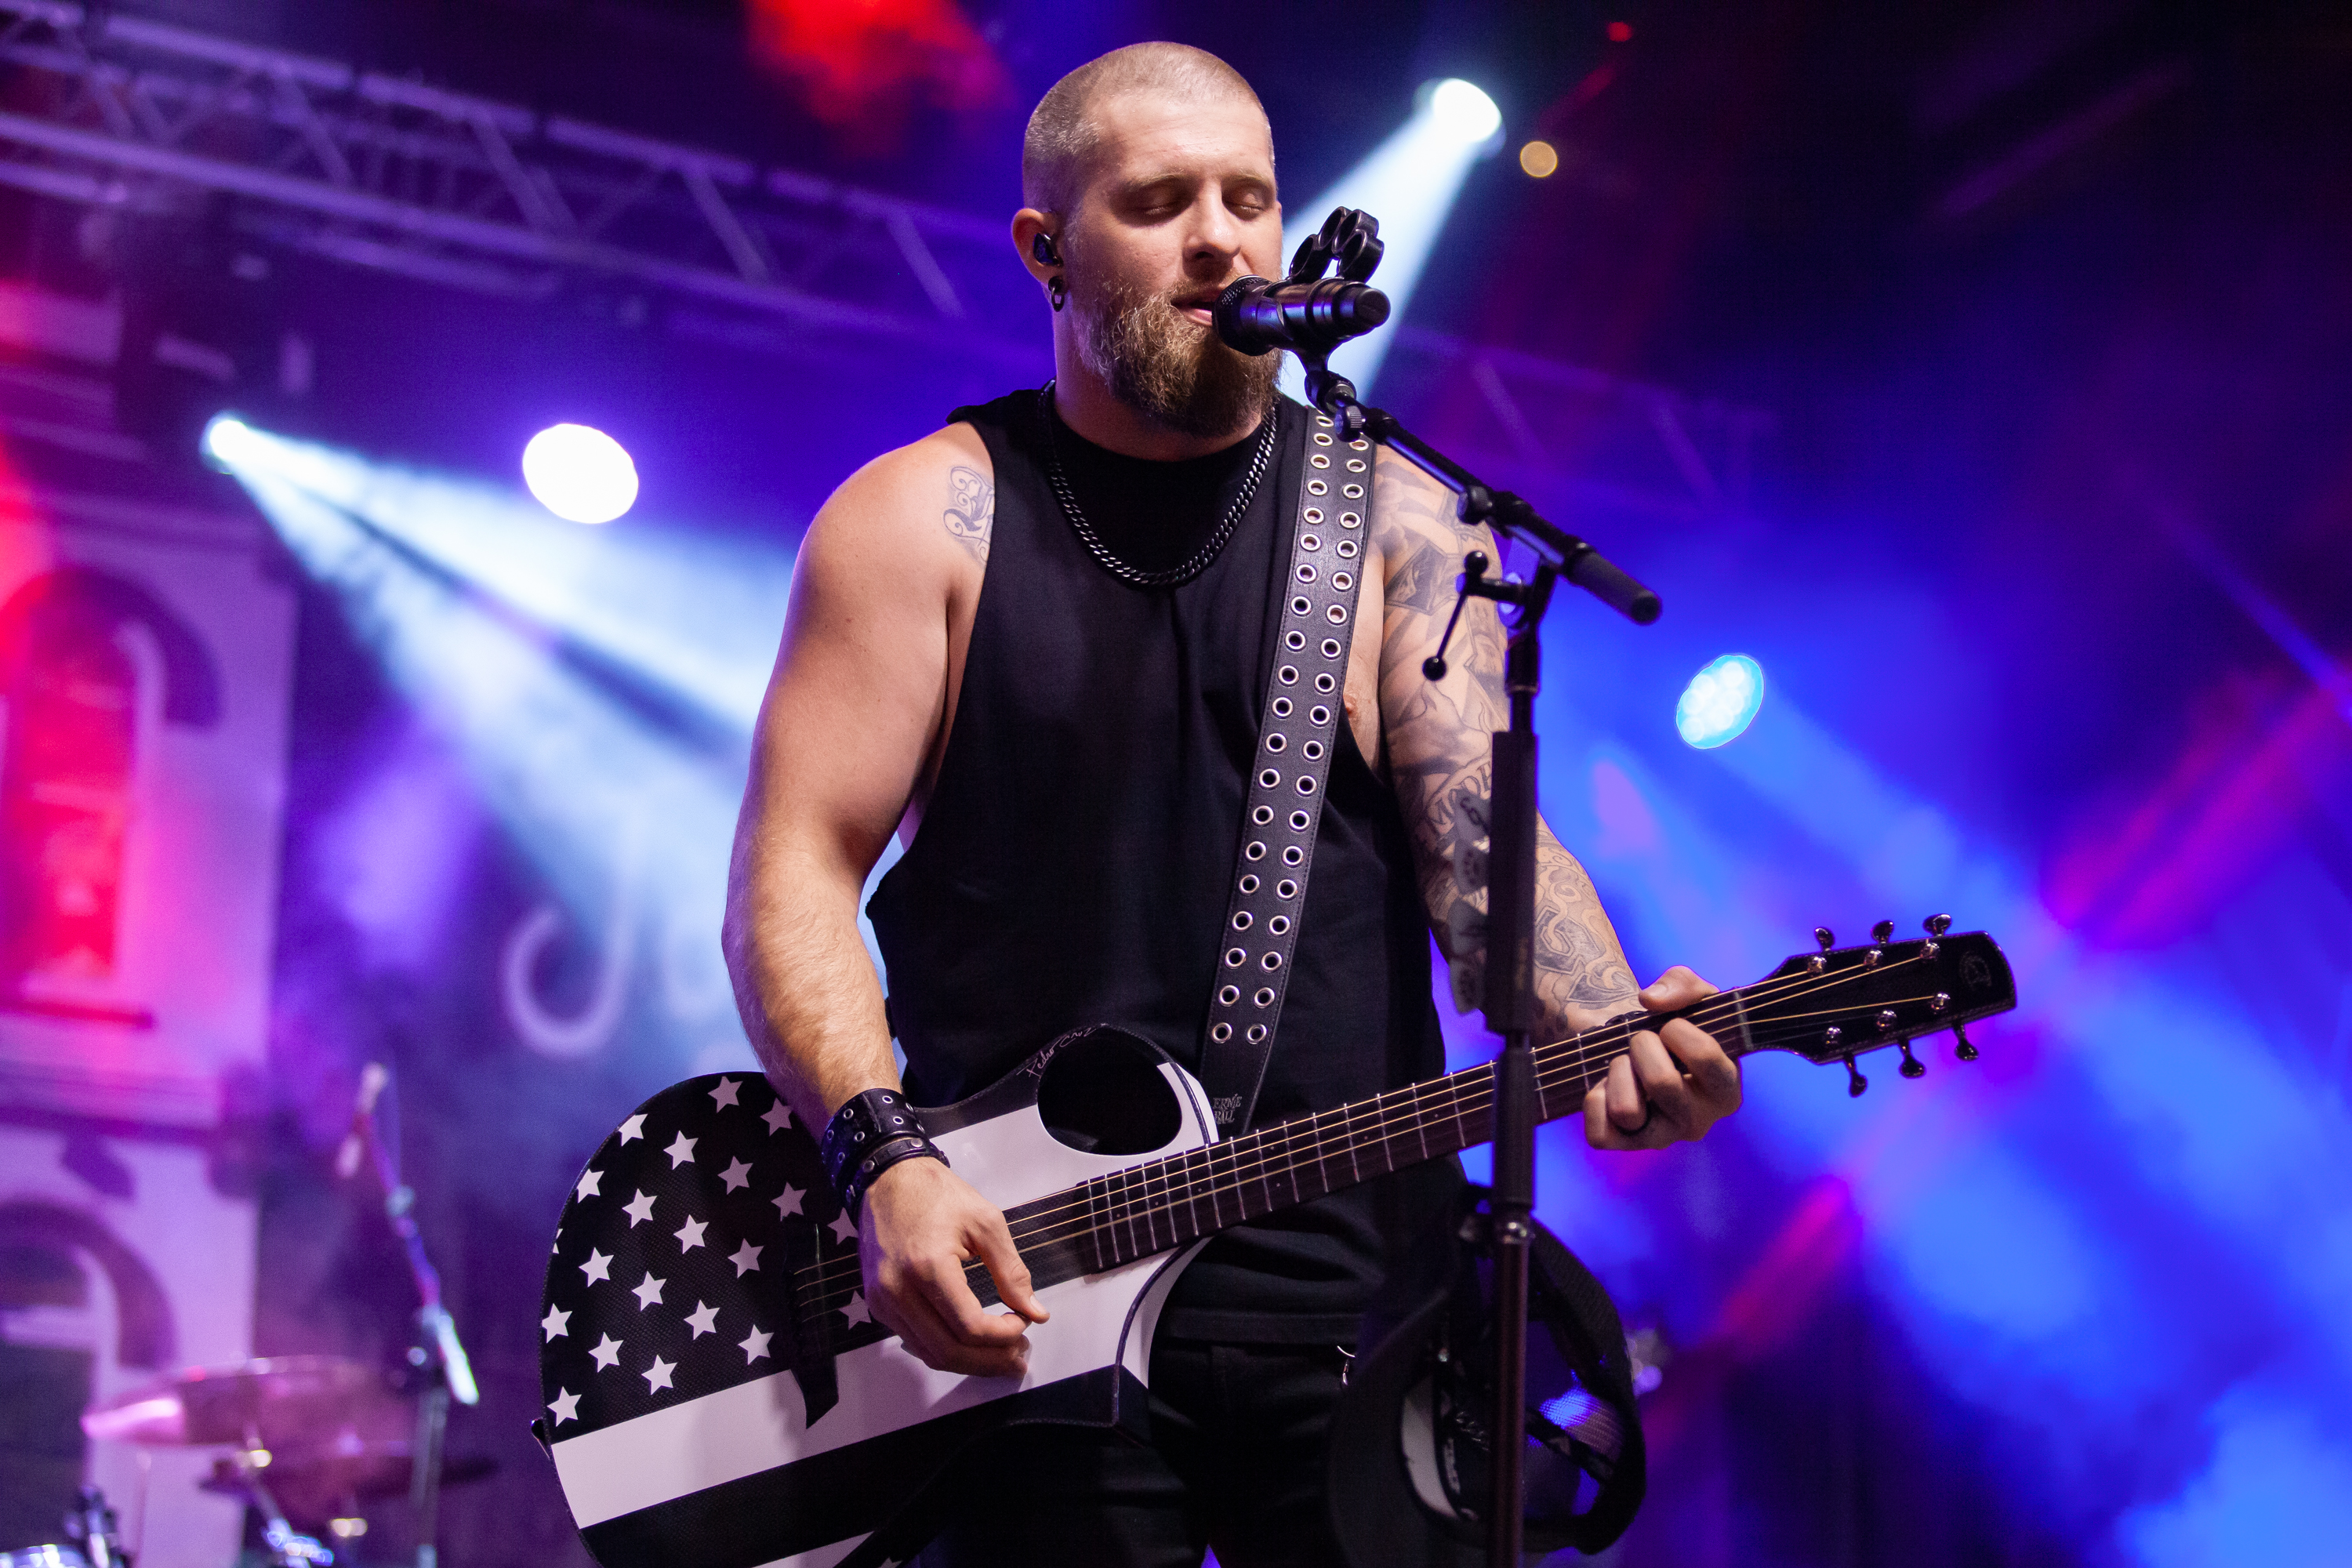 Photos: Brantley Gilbert, Lee Brice + More at Tootsie's 59th Birthday Bash!